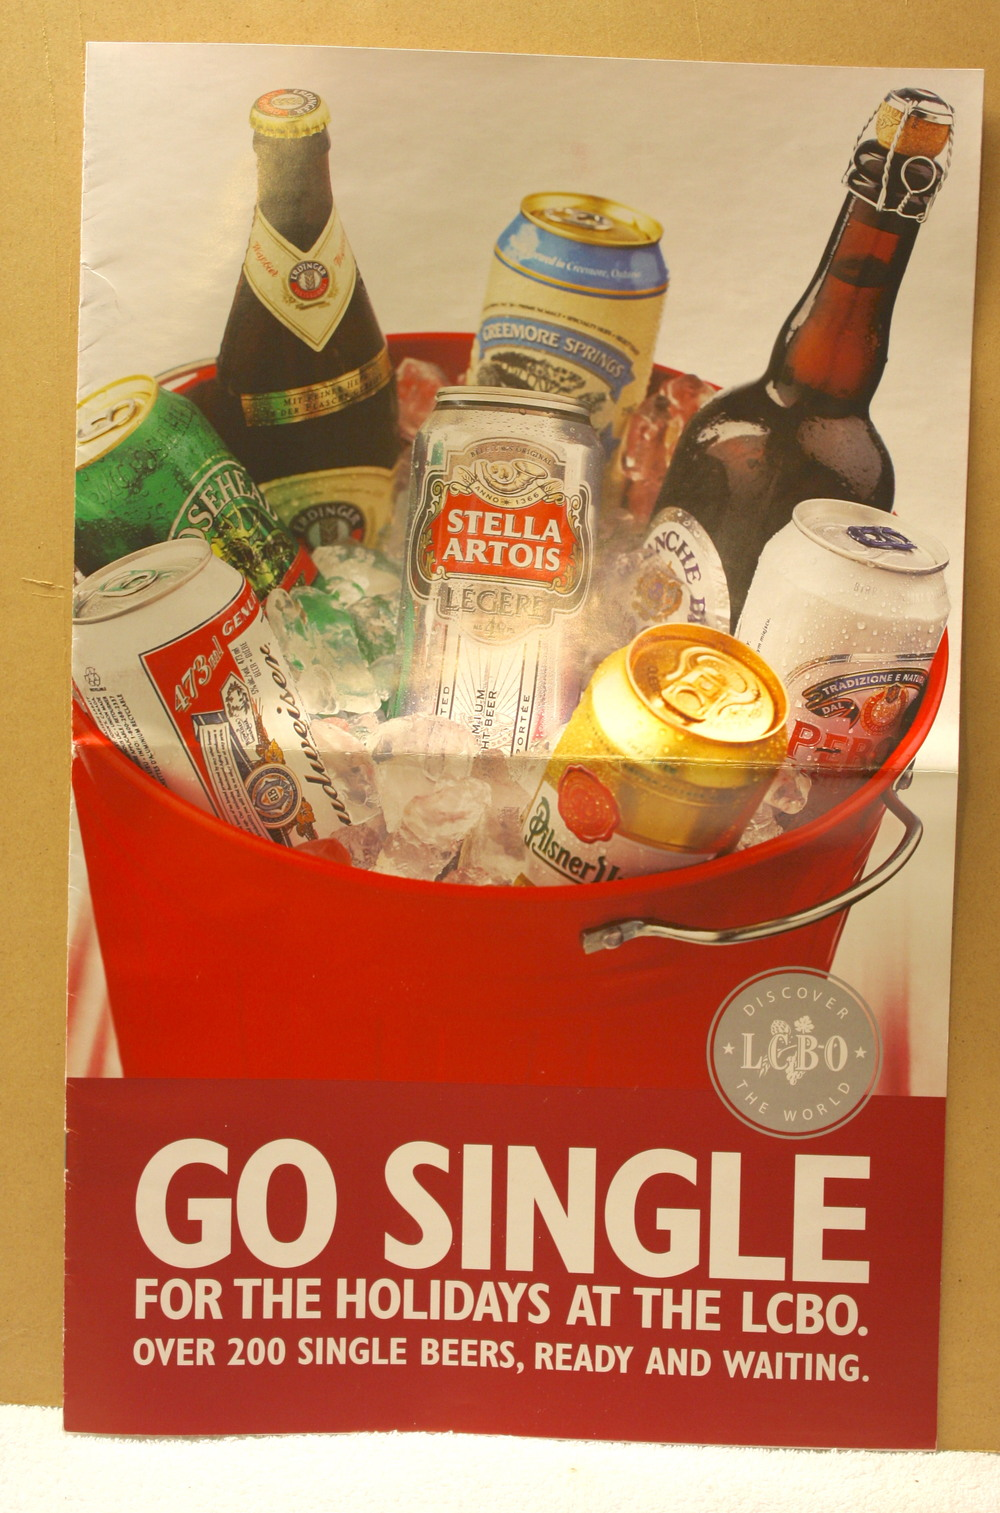 Go Single For the Holidays At The LCBO (2009)